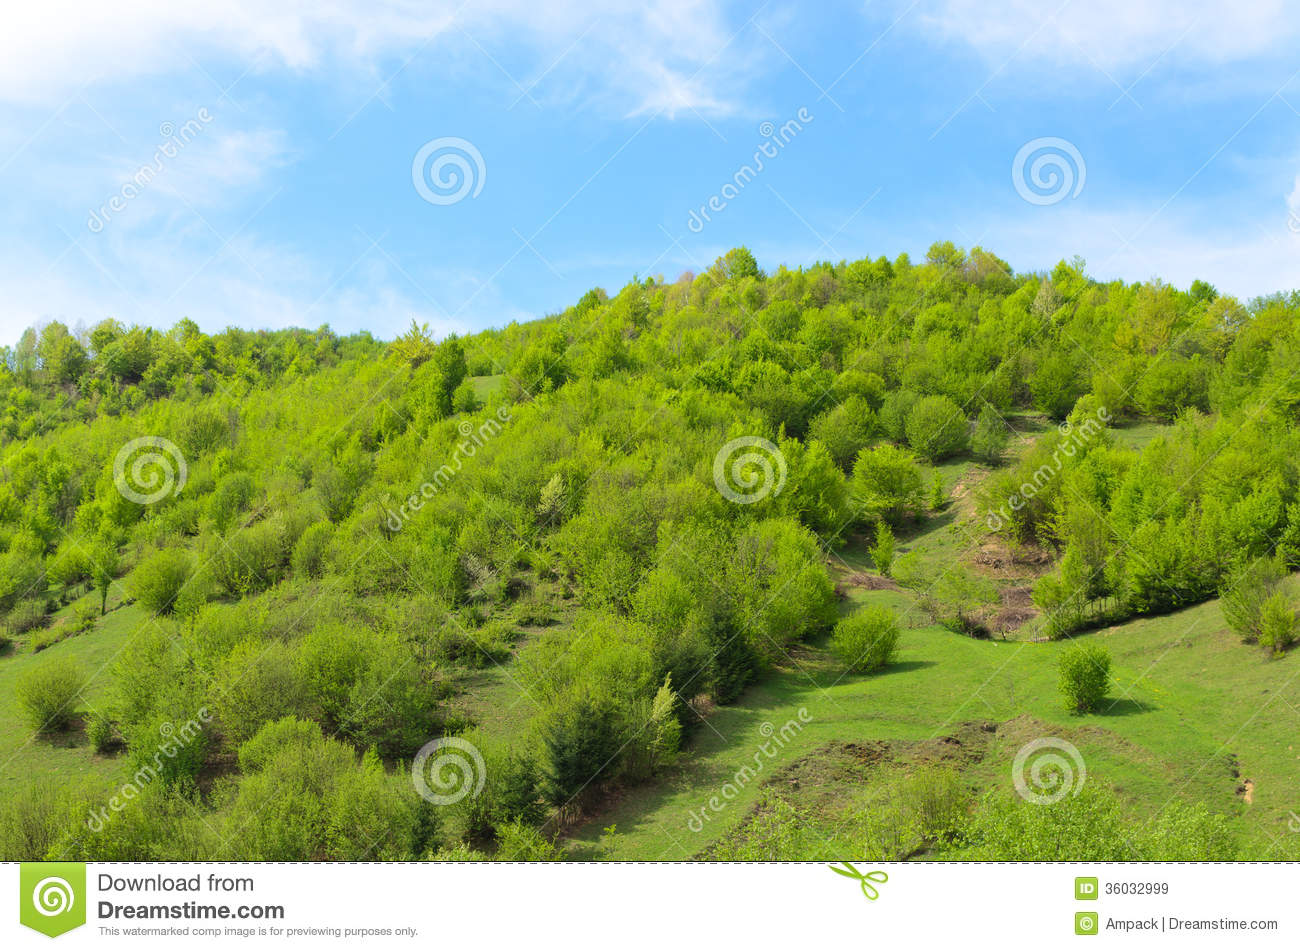 Landscaping A Sunny Hillside : Sunny blue sky with wispy clouds for a scenic landscape background